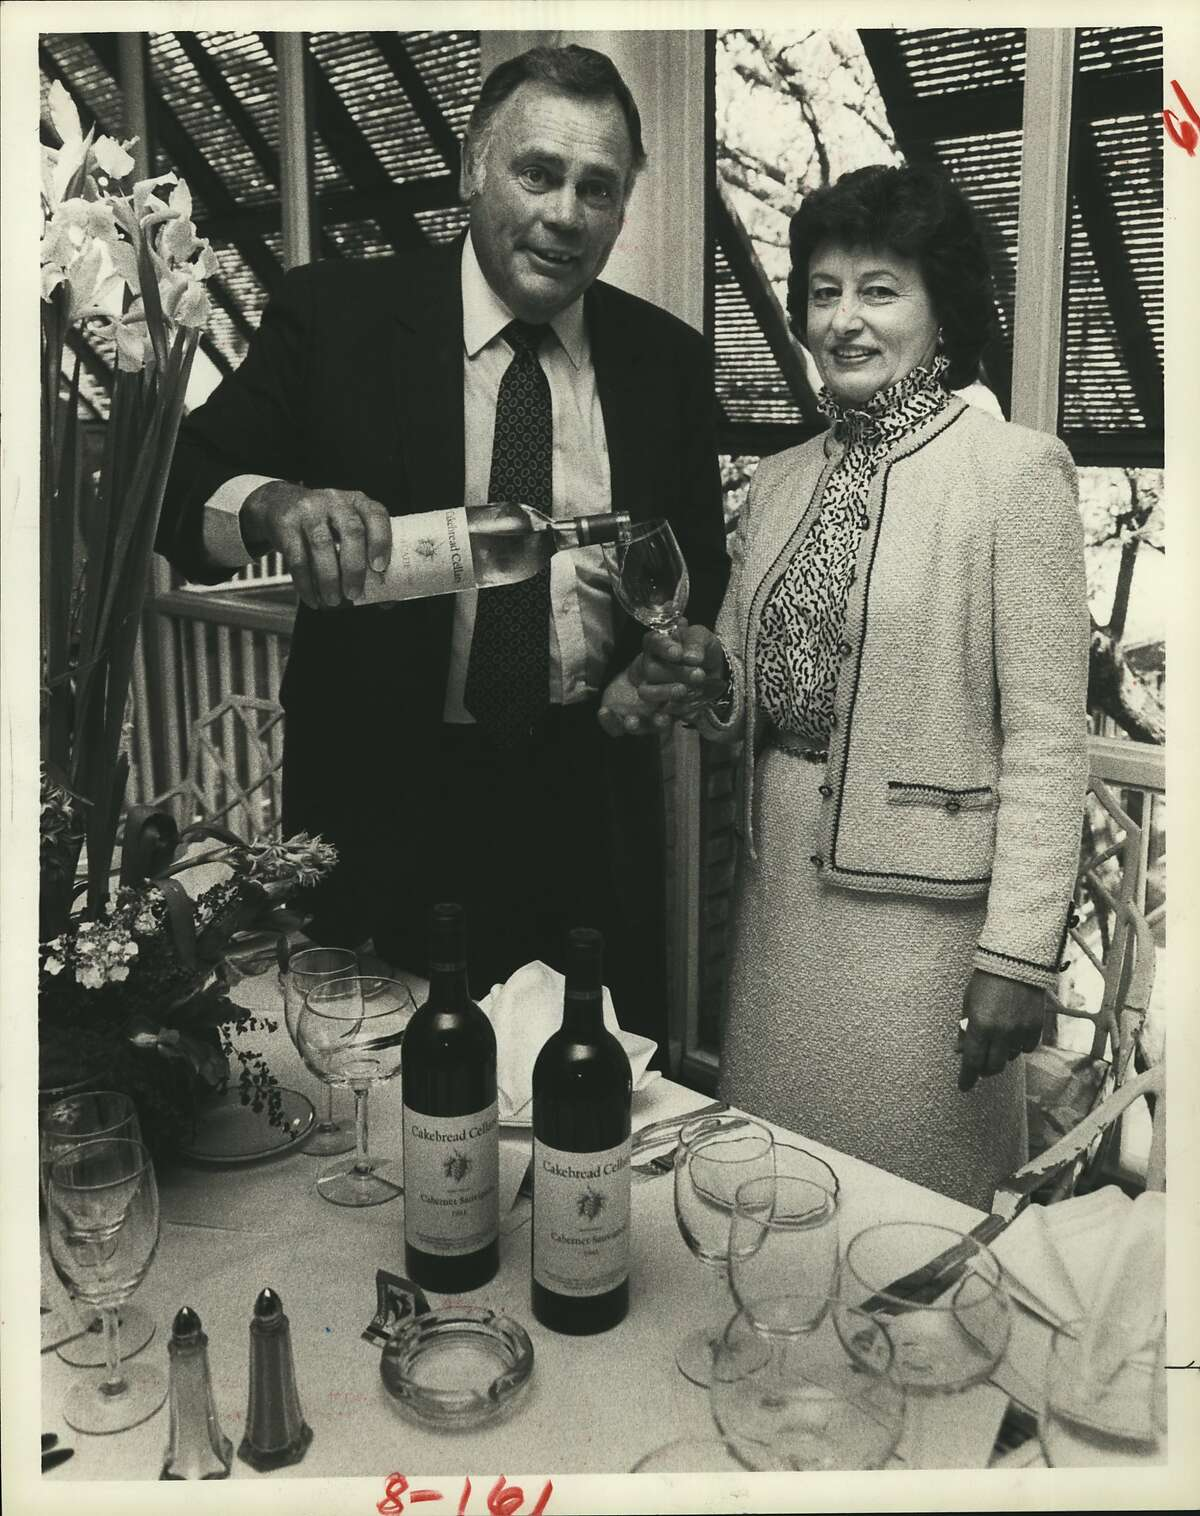 Jack Cakebread of Cakebread Cellars pours a glass of commemorative Decade Sauvignon Blanc for wife Dolores in 1984.